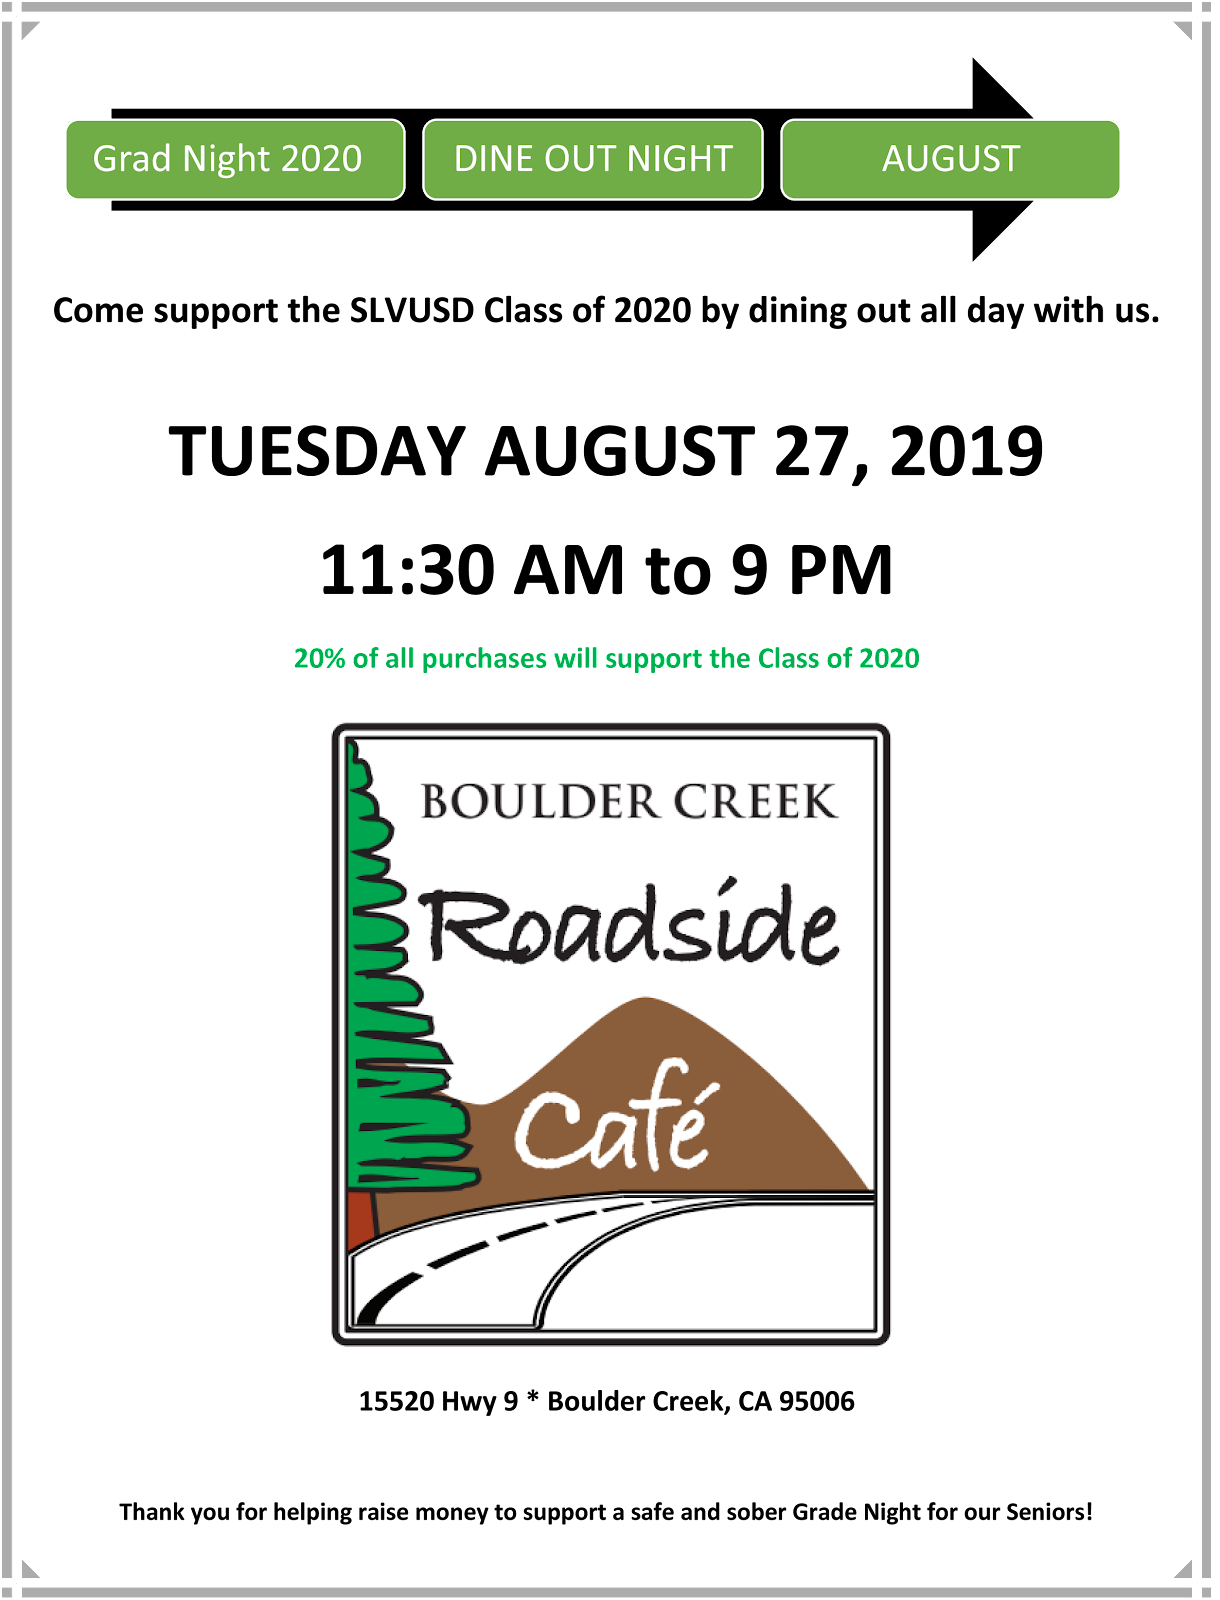 dine out fundraiser at roadside cafe. call 335-4425 for details